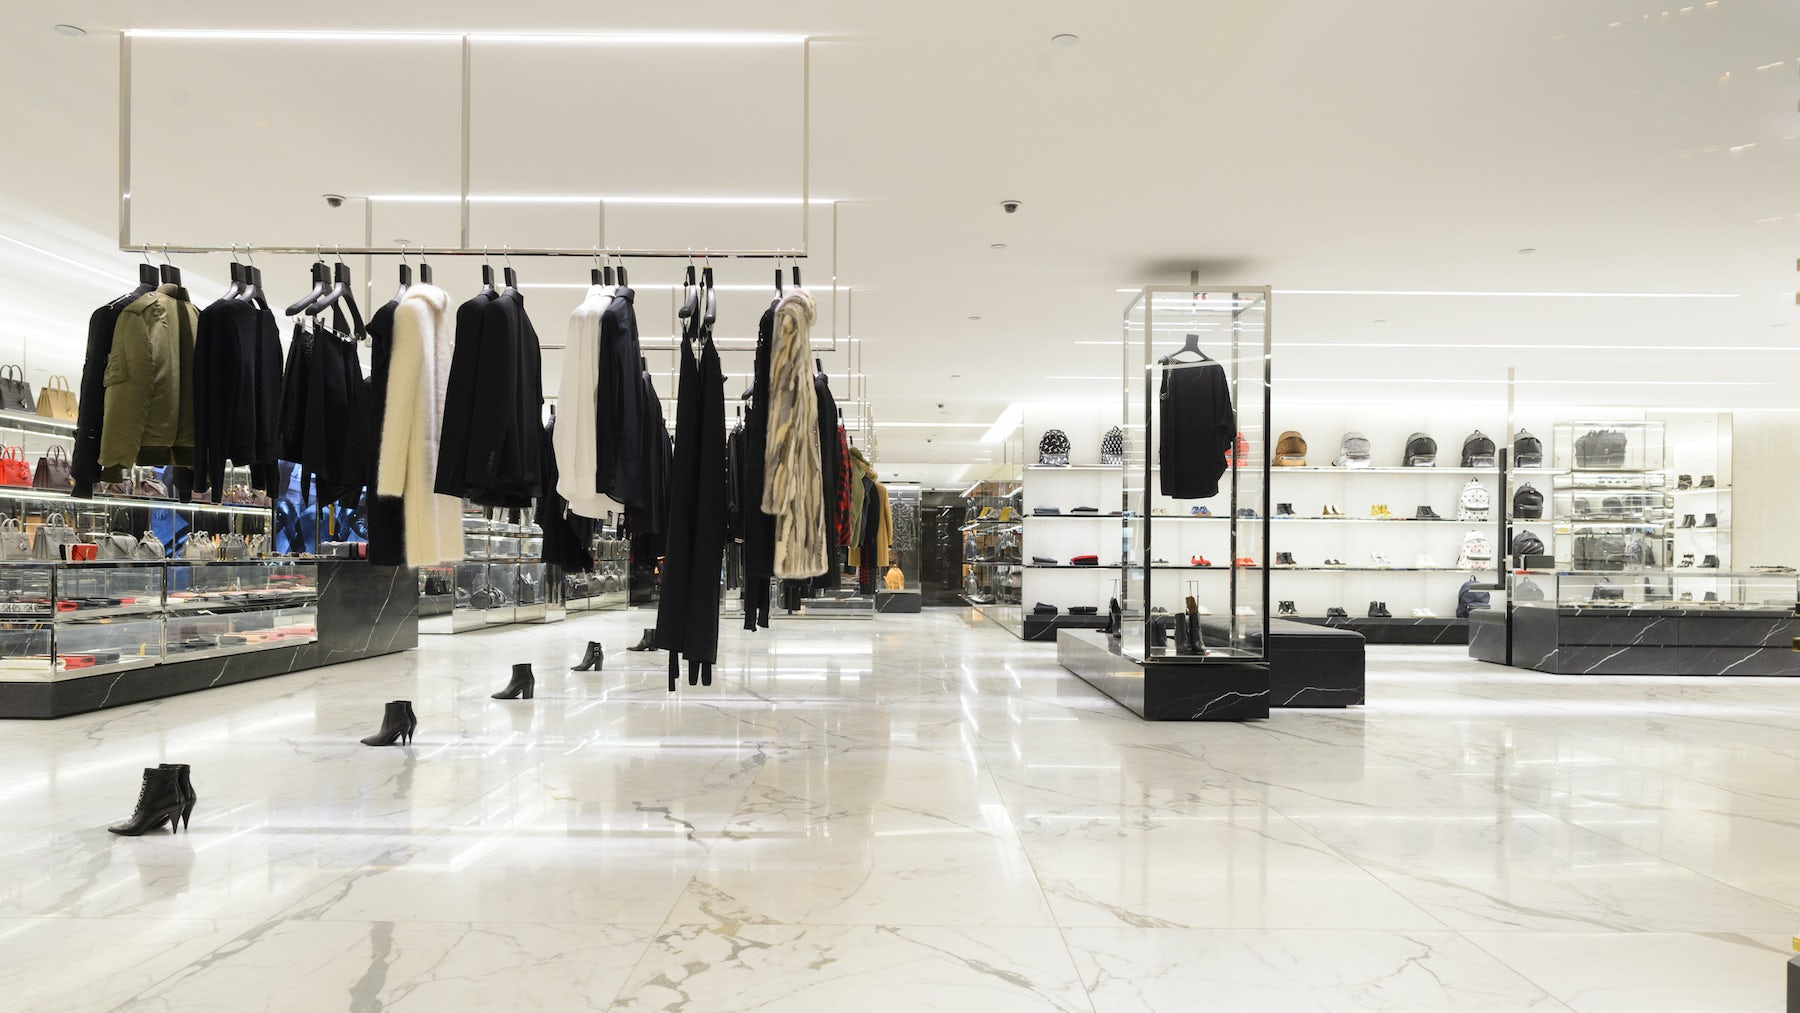 A Saint Laurent concession store at Elements Shopping Mall, Hong Kong   Source: Shutterstock